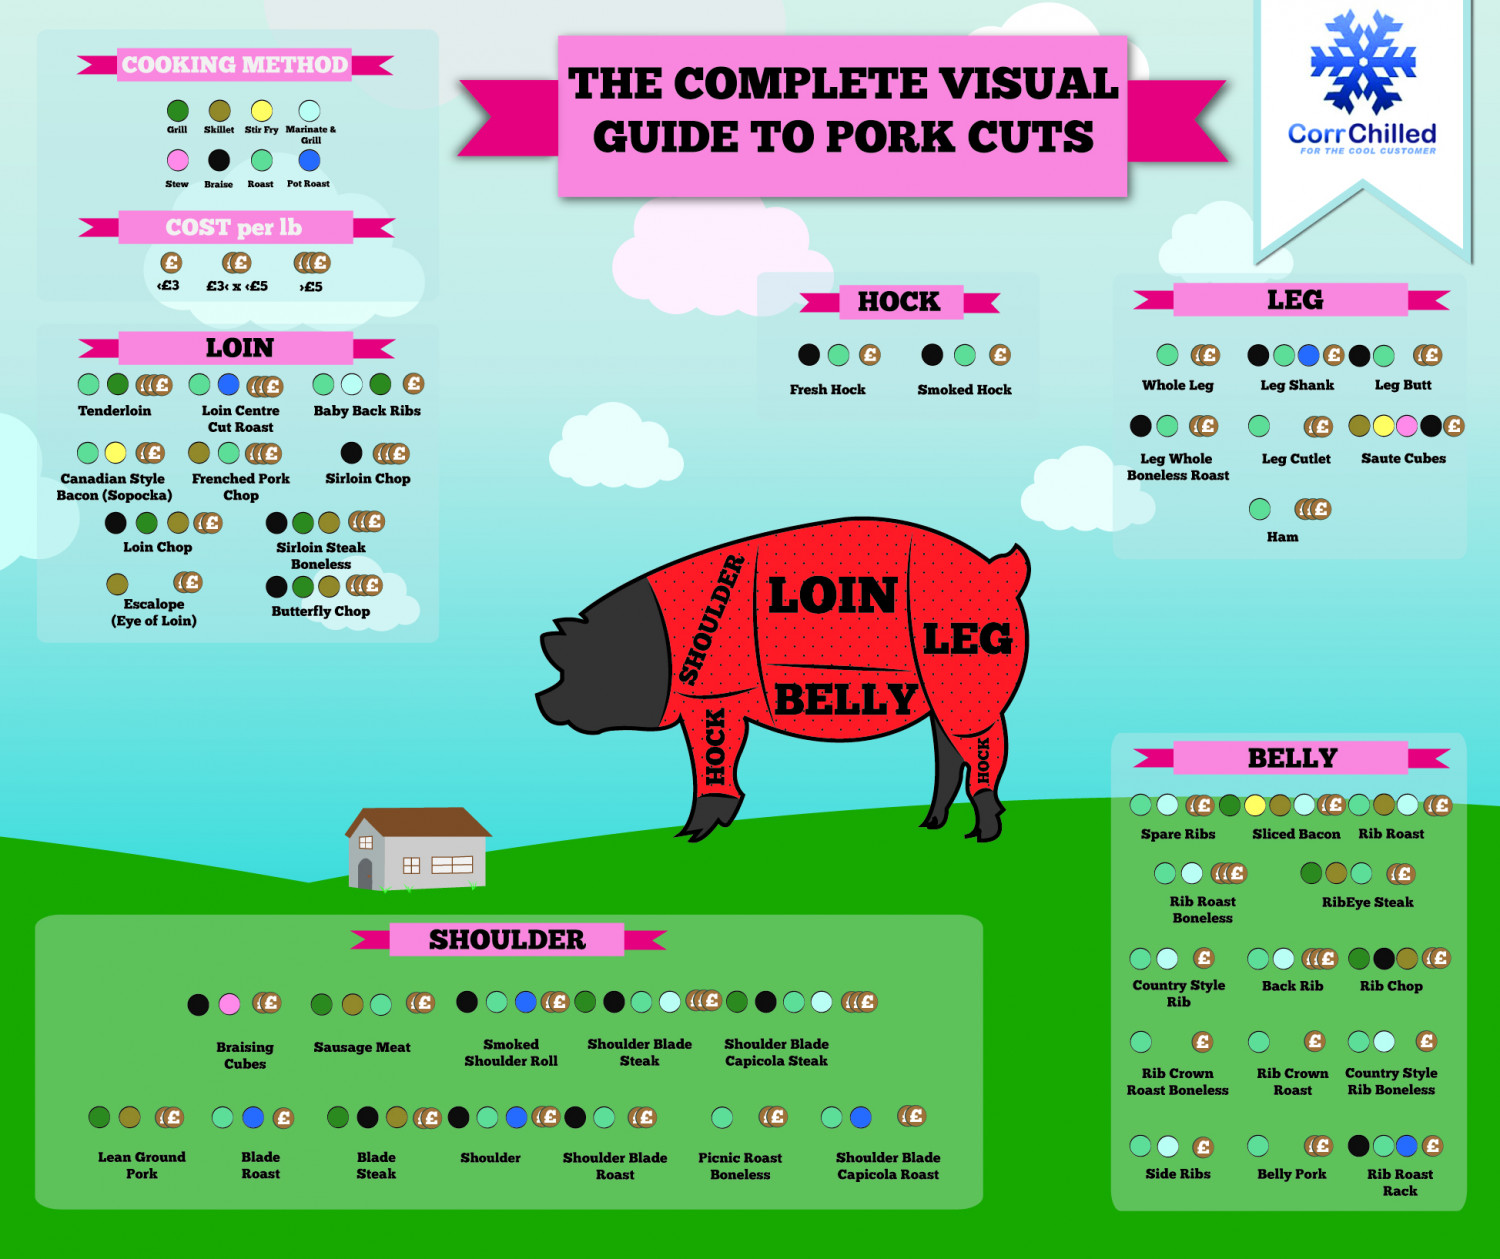 The Complete Visual Guide to Pork Cuts Infographic